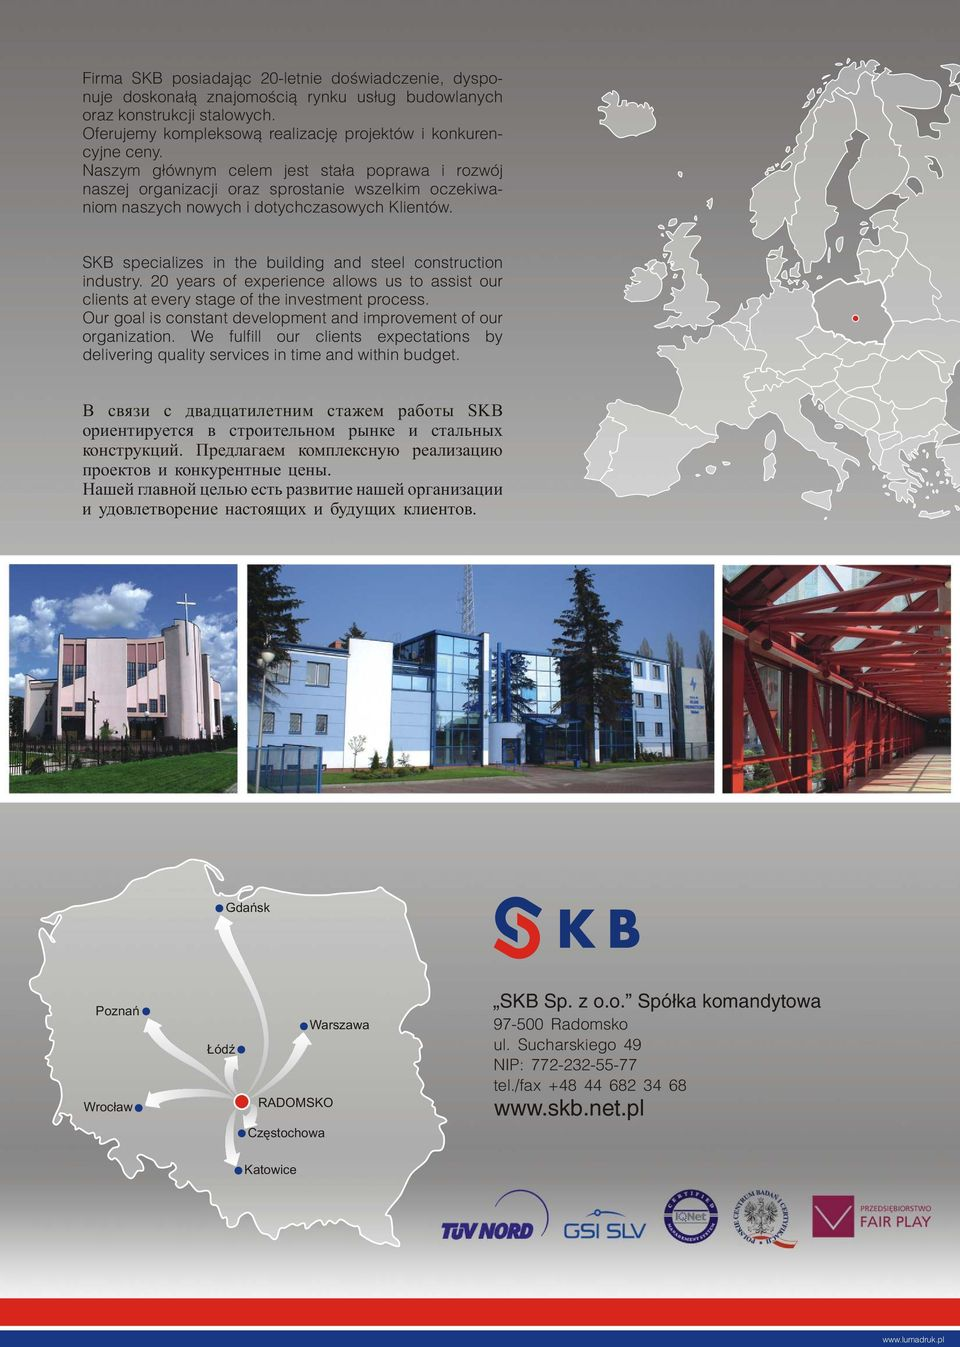 SKB specializes in the building and steel construction industry. 20 years of experience allows us to assist our clients at every stage of the investment process.